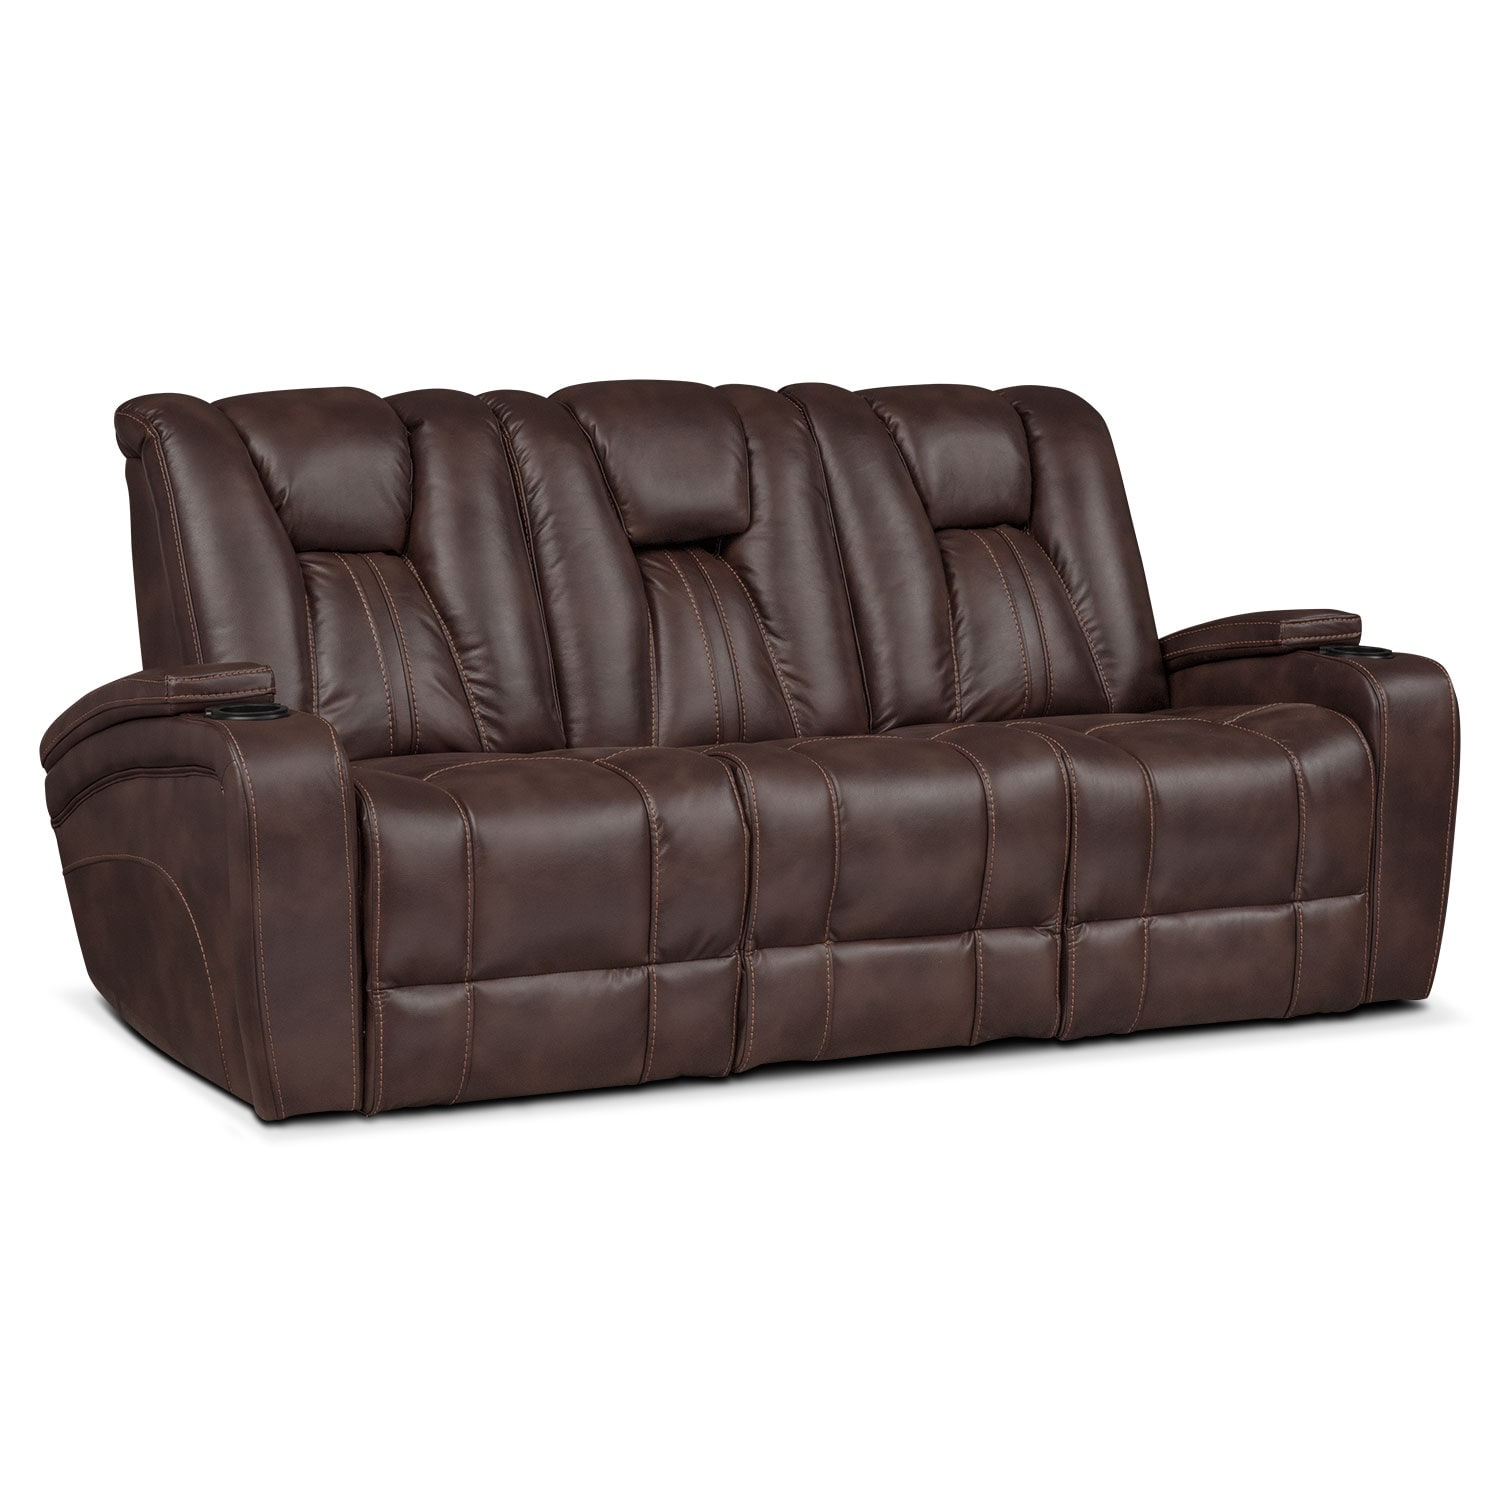 Pulsar Dual Power Reclining Sofa Brown Value City